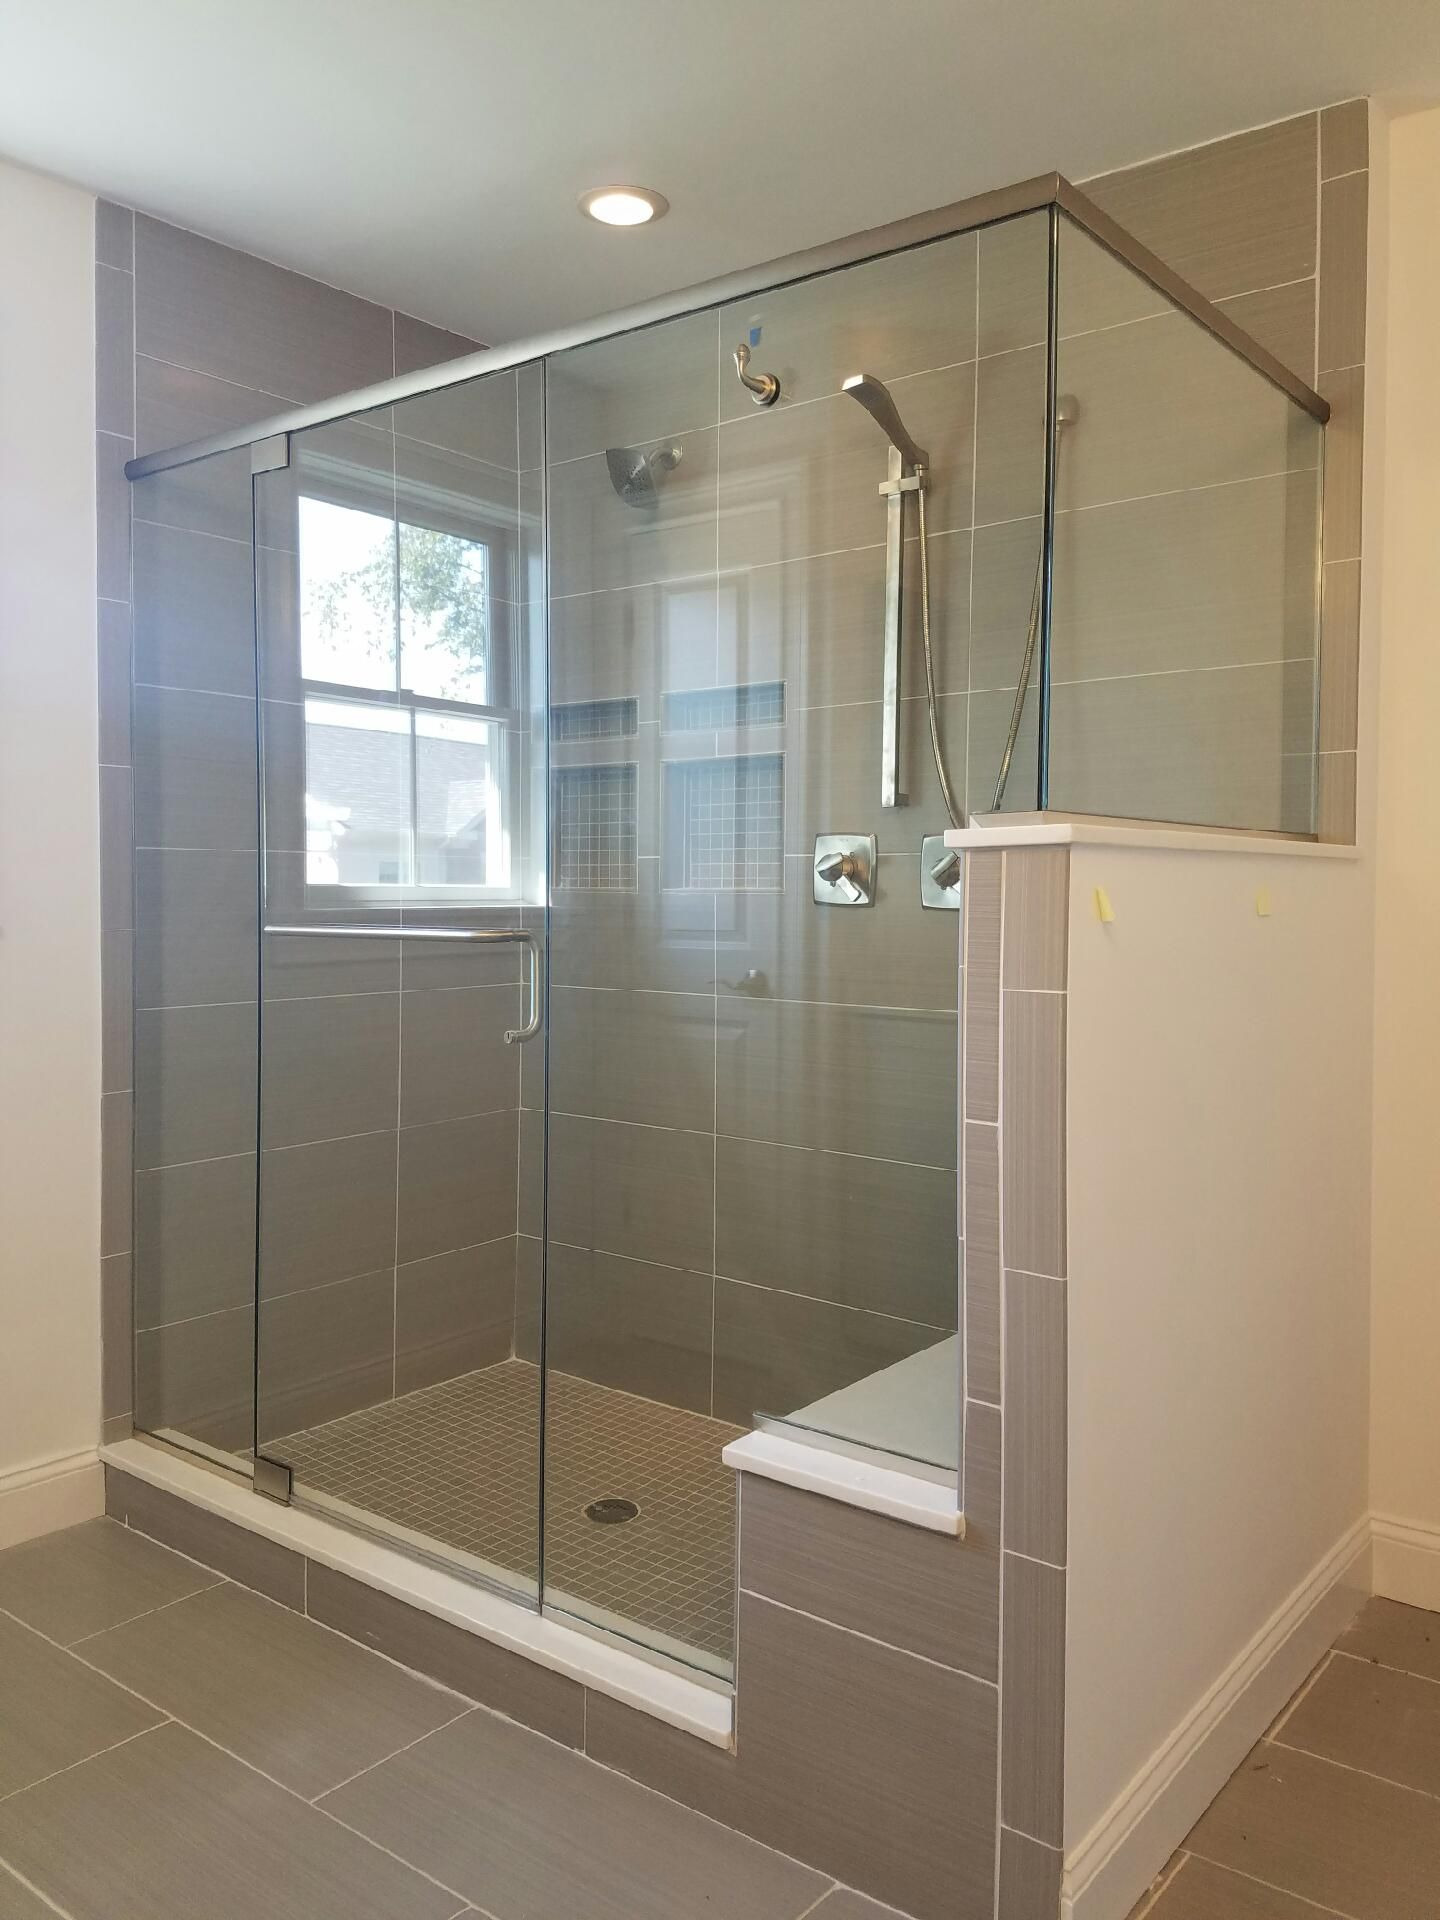 Frameless Vs Semi Frameless Vs Framed Shower Enclosures Framed